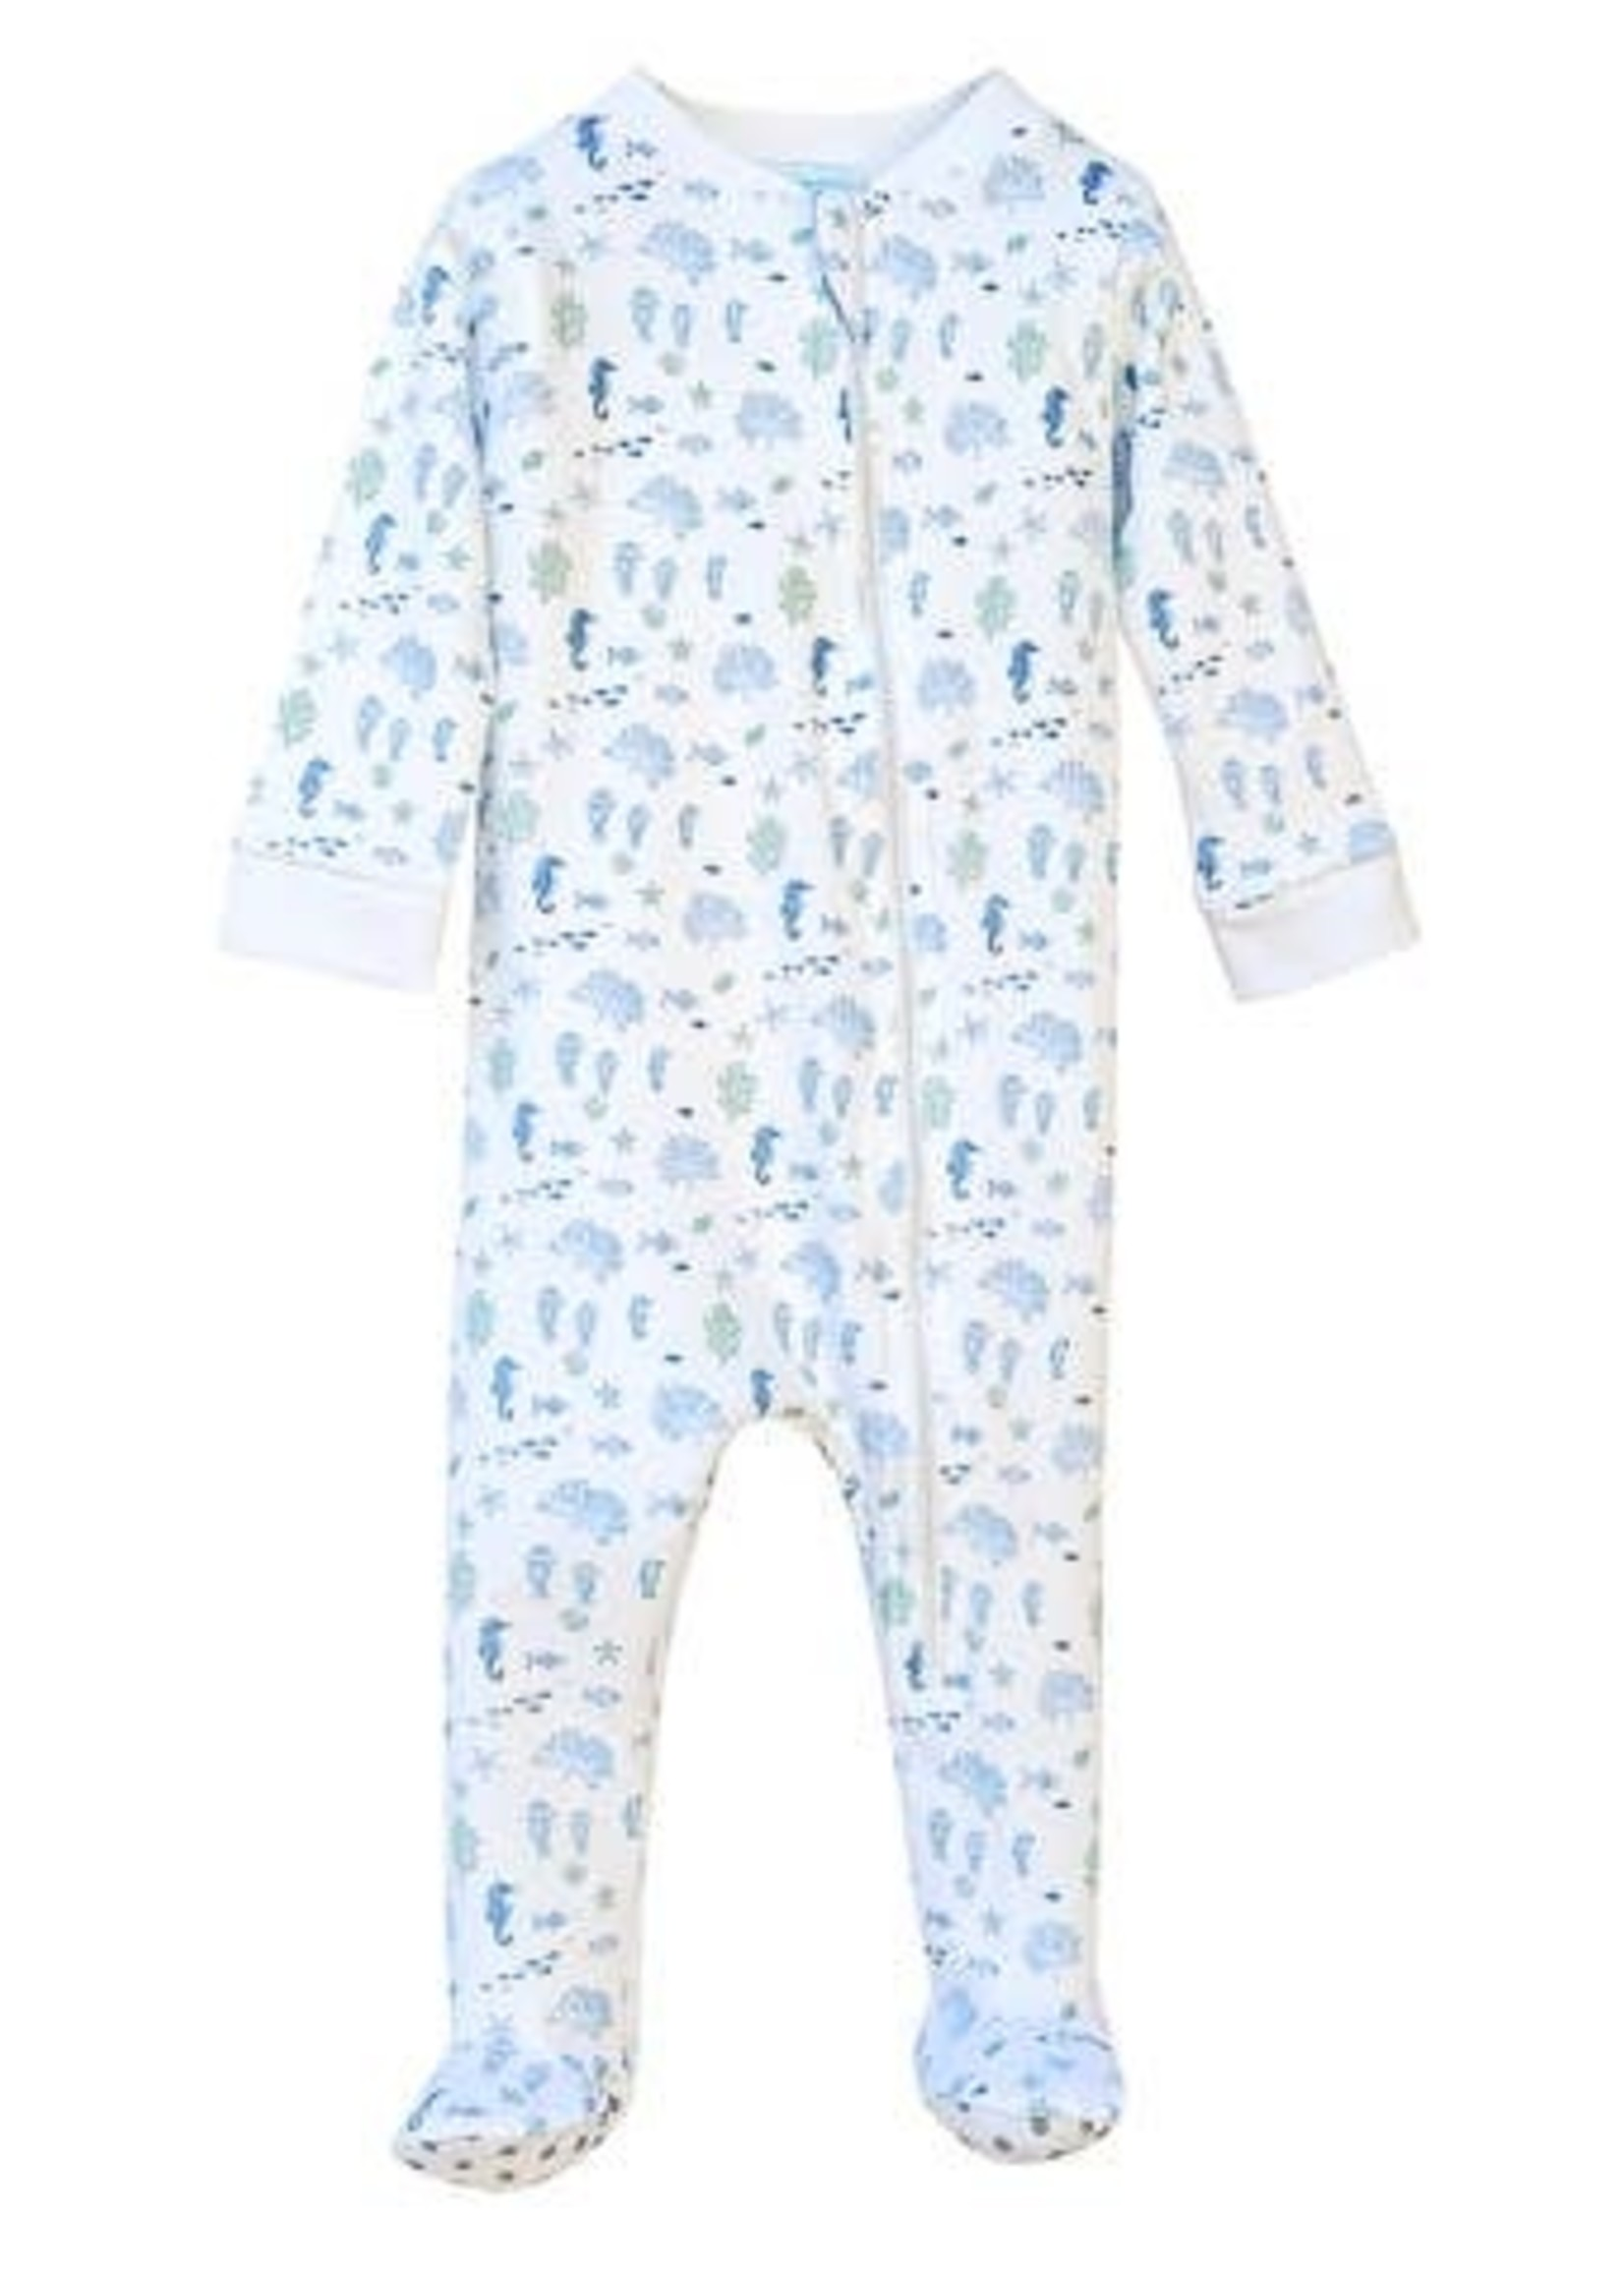 feather baby Reef- Blue on White Zipper Footie